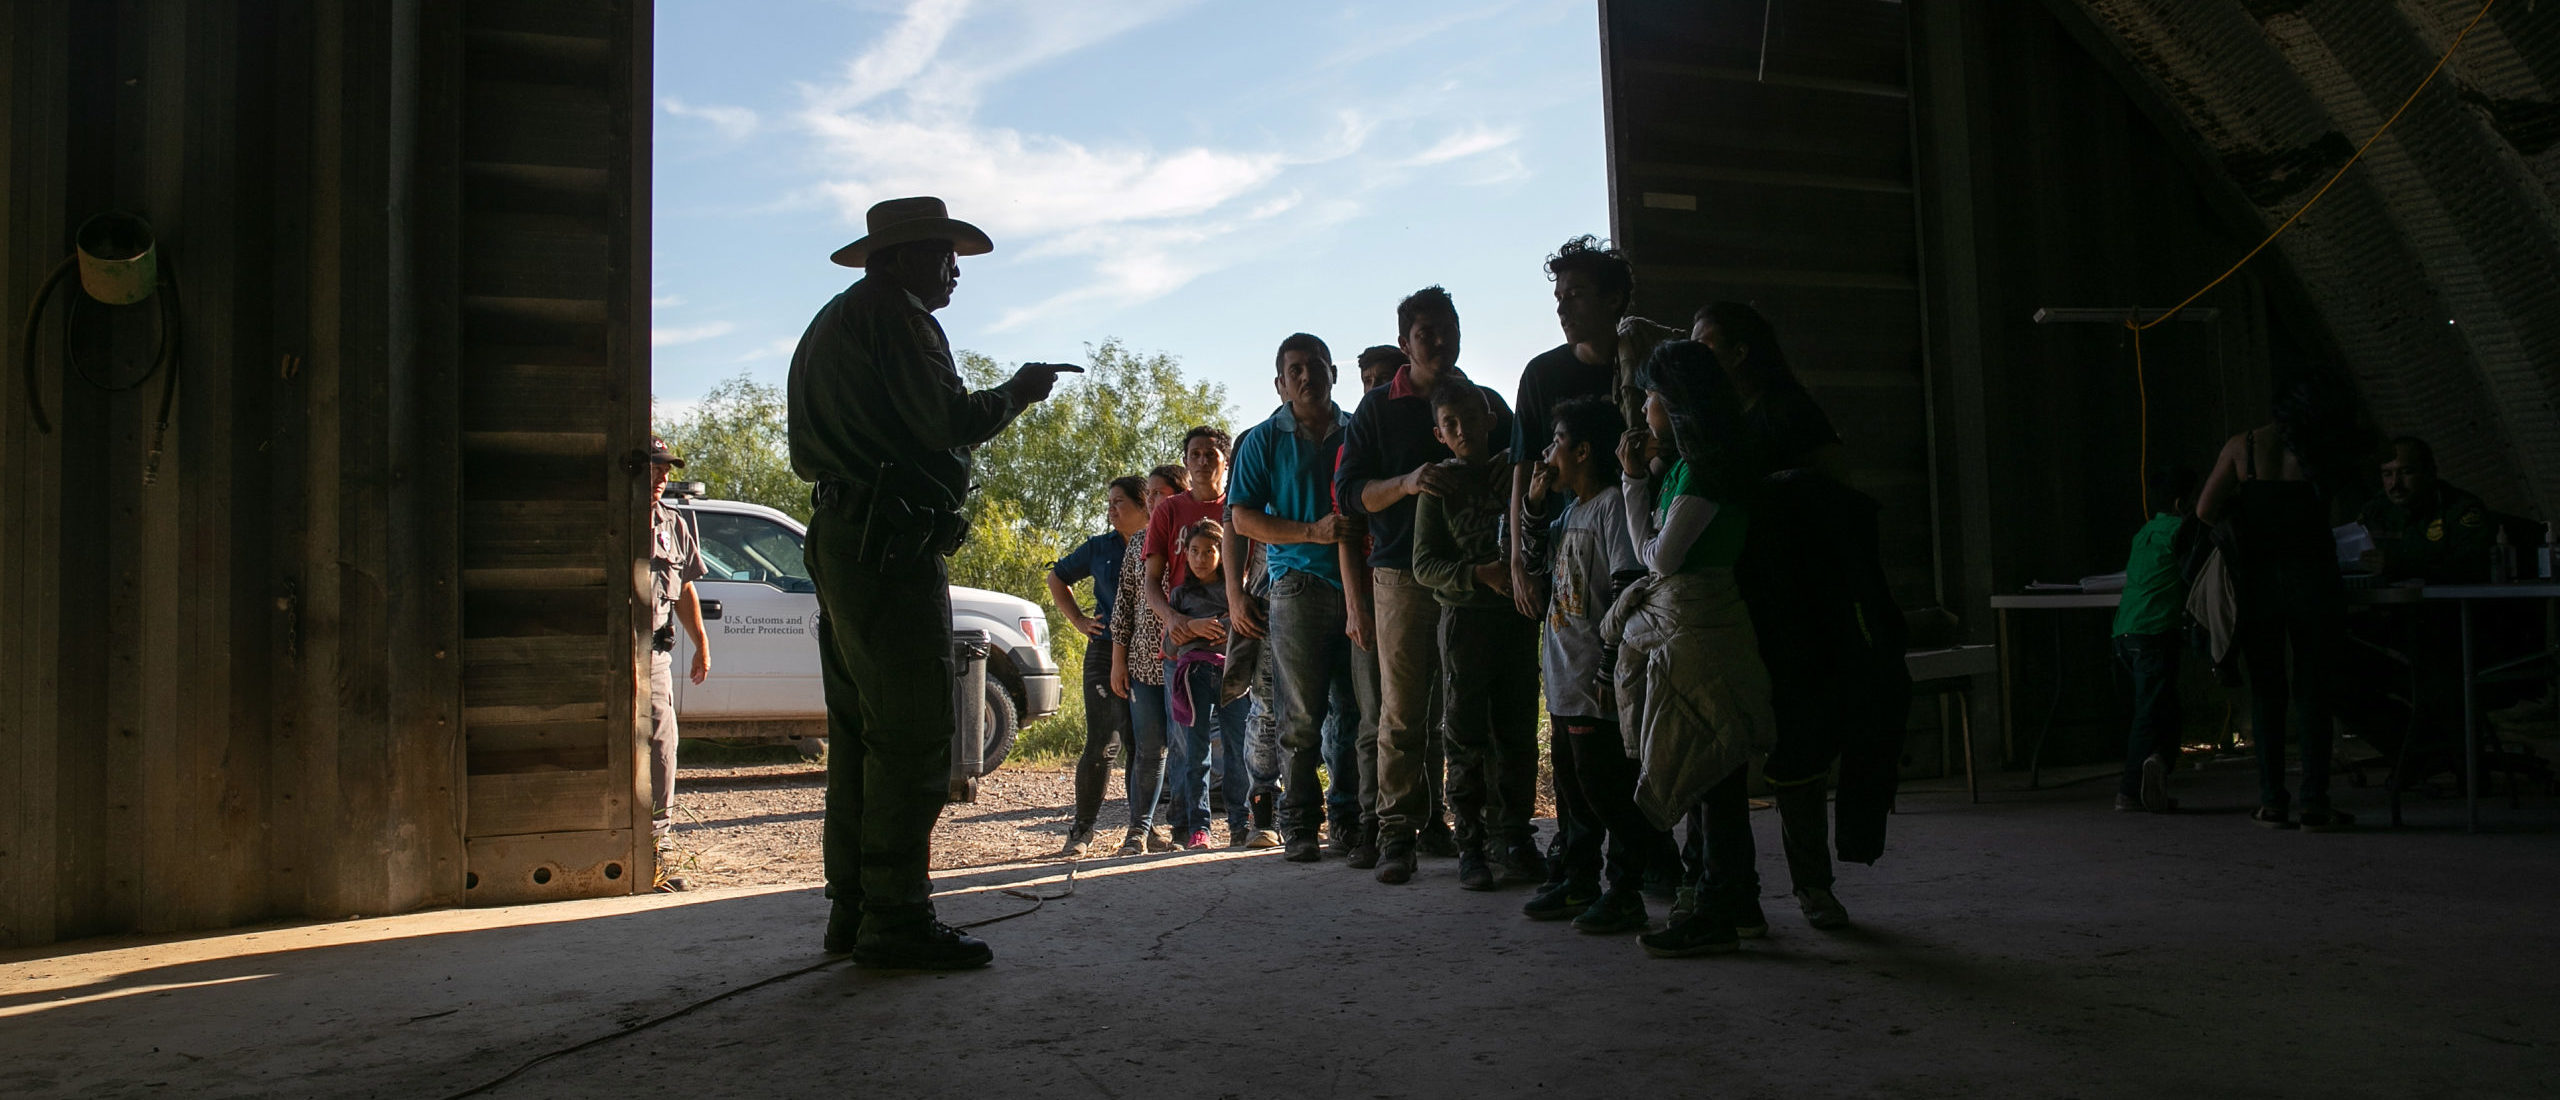 LOS EBANOS, TEXAS - SEPTEMBER 10: A U.S. Border Patrol agent gives instructions to families, mostly from Central America, who had crossed the Rio Grande from Mexico and presented themselves to agents on September 10, 2019 in Los Ebanos, Texas. Although the number of families seeking political asylum at the U.S. southern border has dropped in recent months, the number still far exceeds historic averages during summer months. (Photo by John Moore/Getty Images)